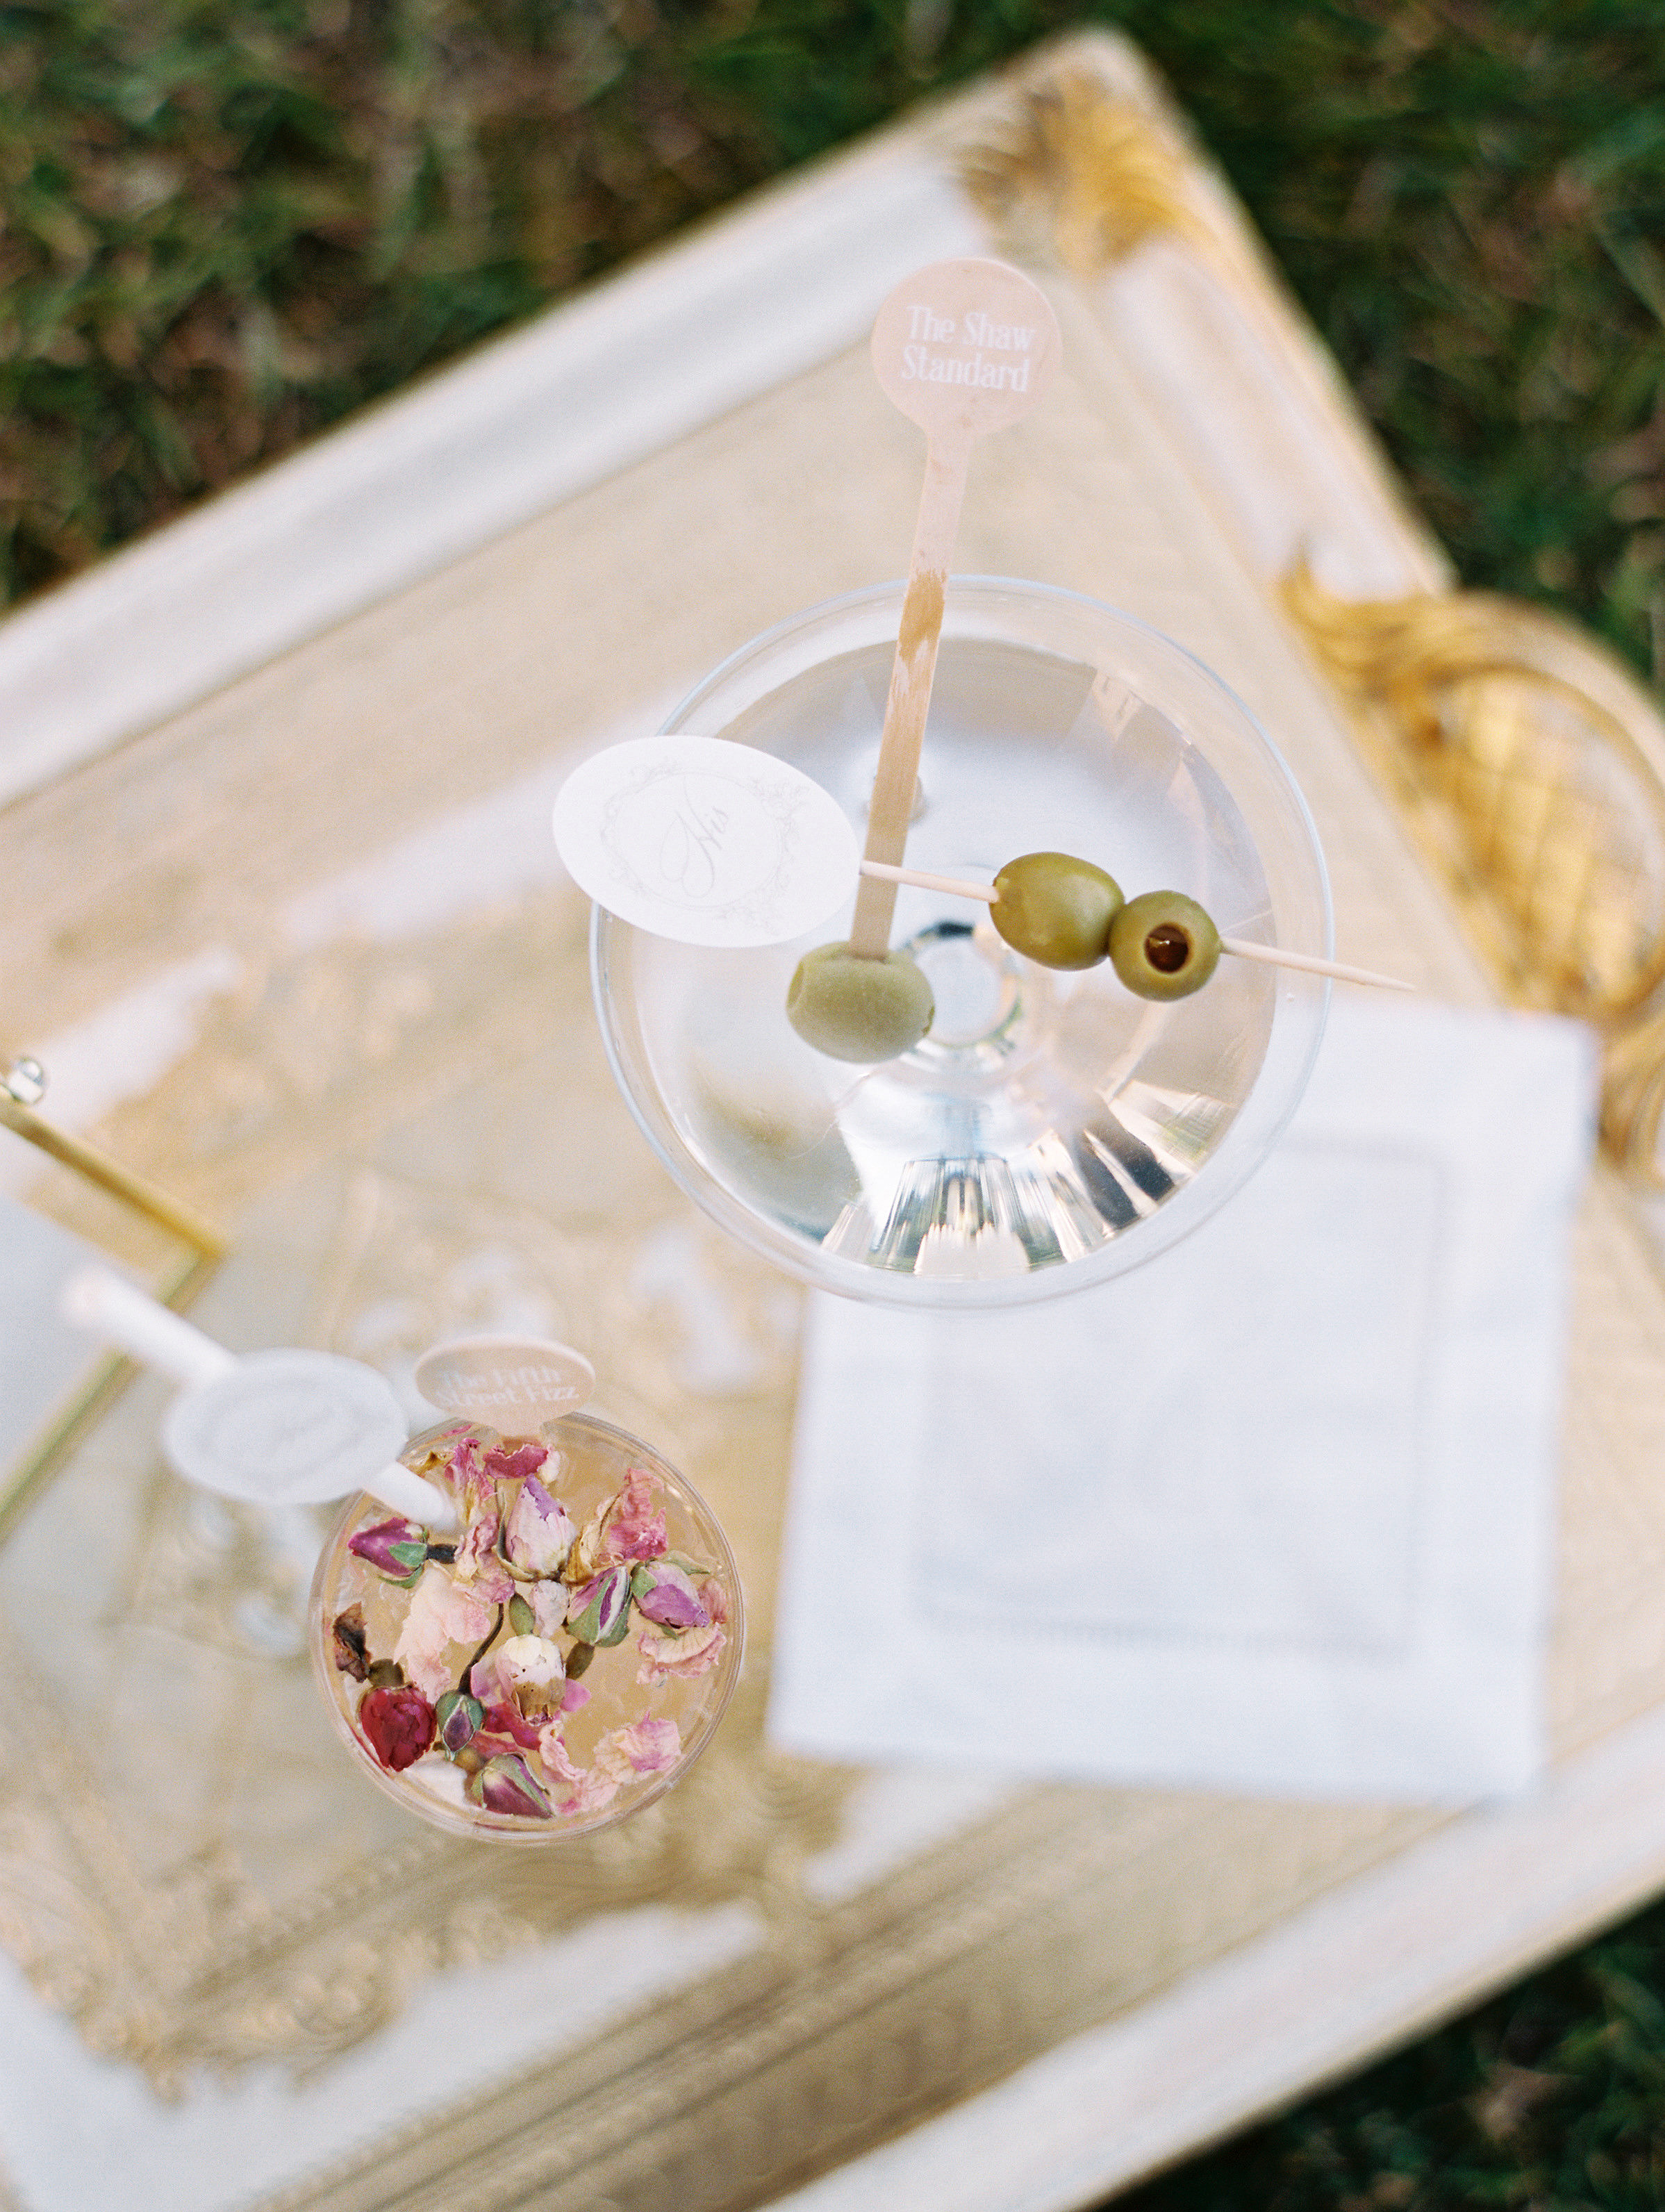 A Mixologist Shares Her Best Tips for Serving CBD-Infused Cocktails at Your Wedding